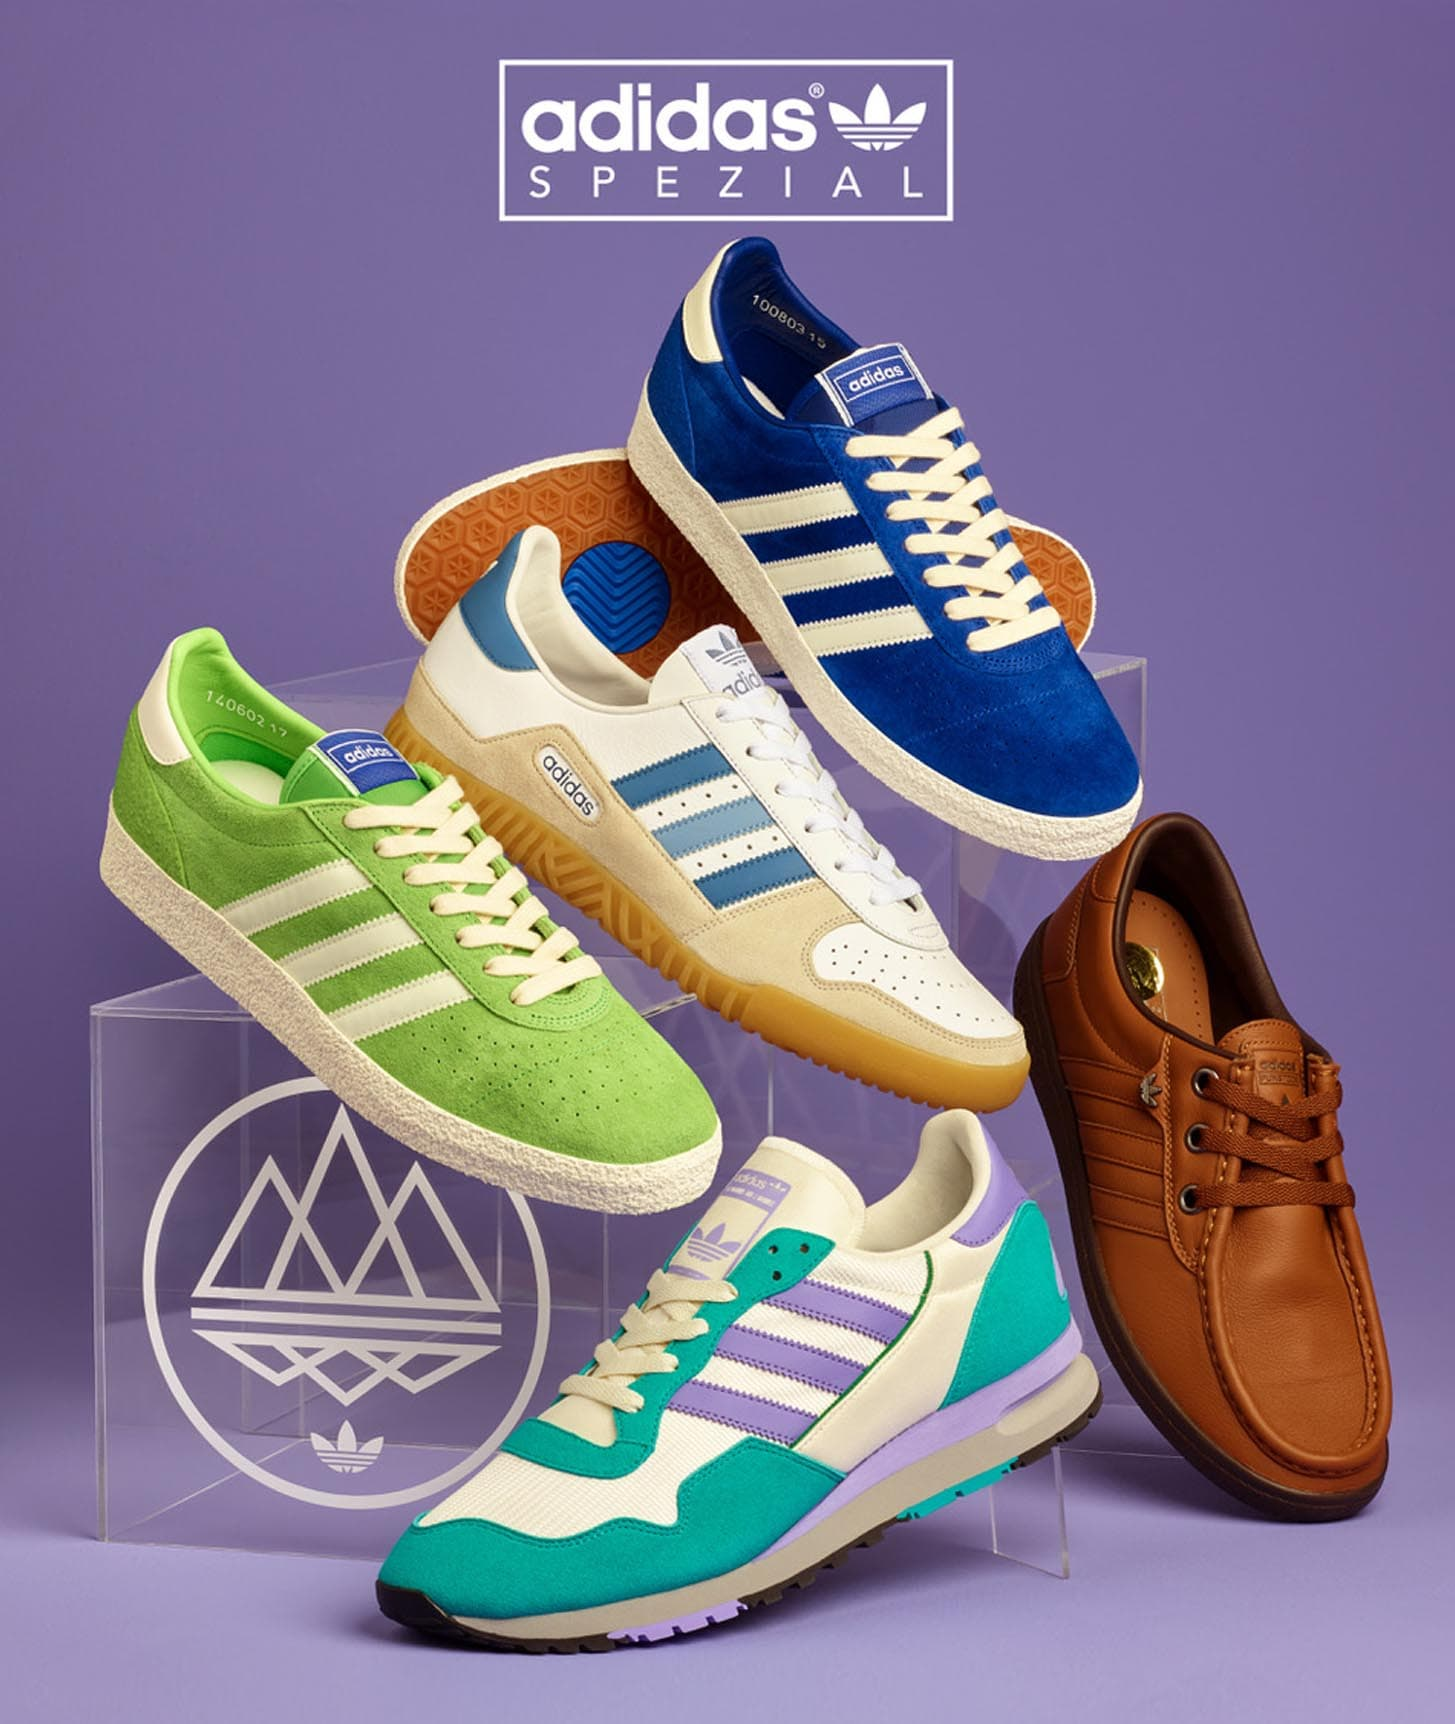 adidas SPEZIAL Launch Fall Winter 2018 Collection - SoccerBible 1194ef76558ed